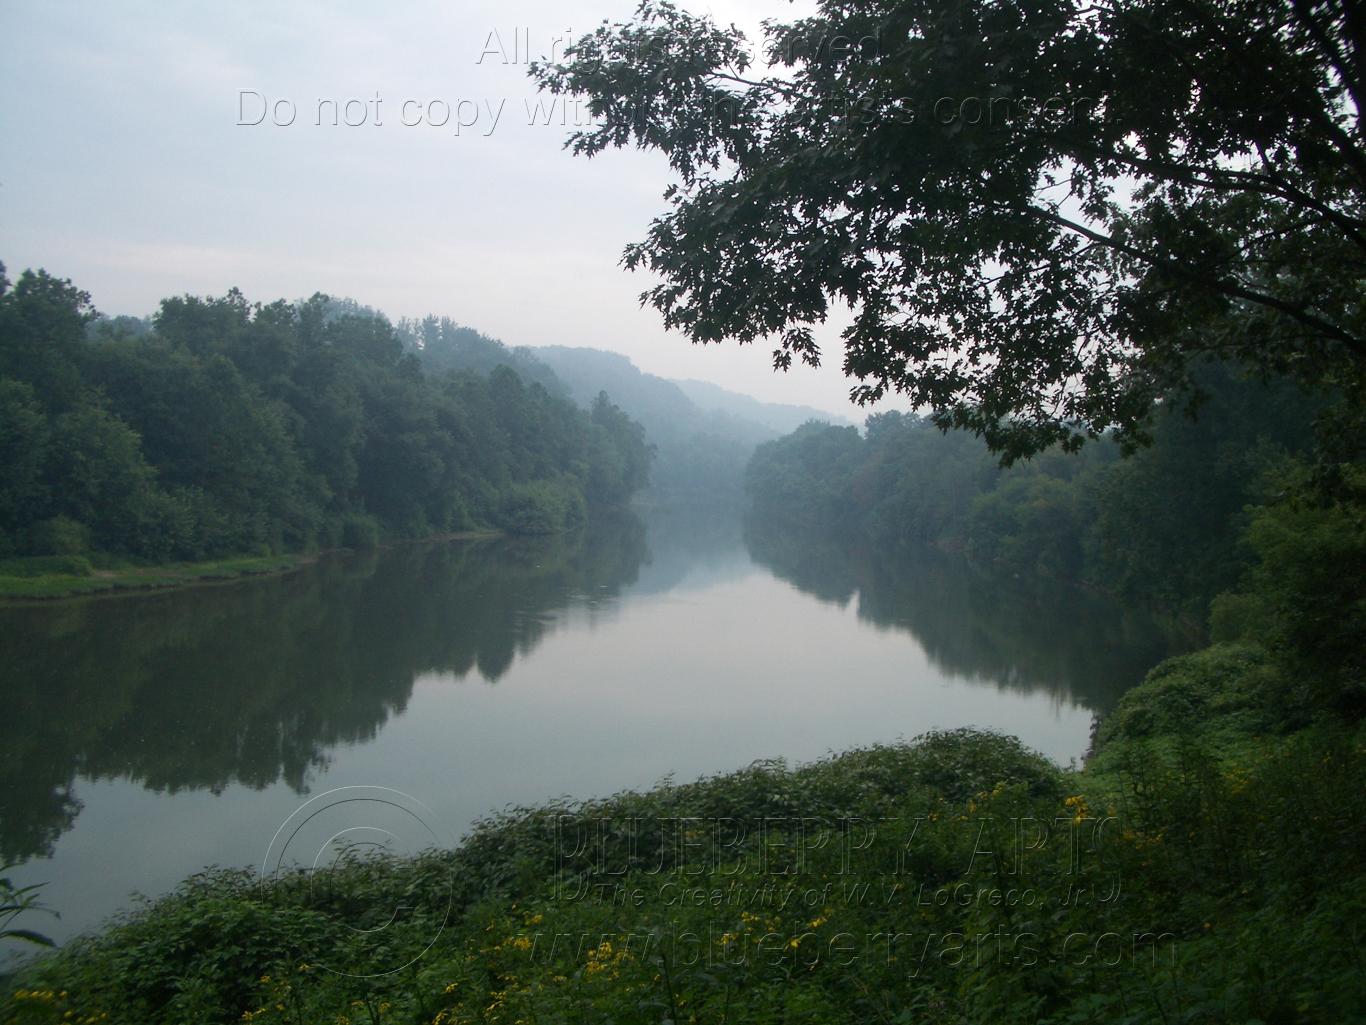 Misty Youghiogheny